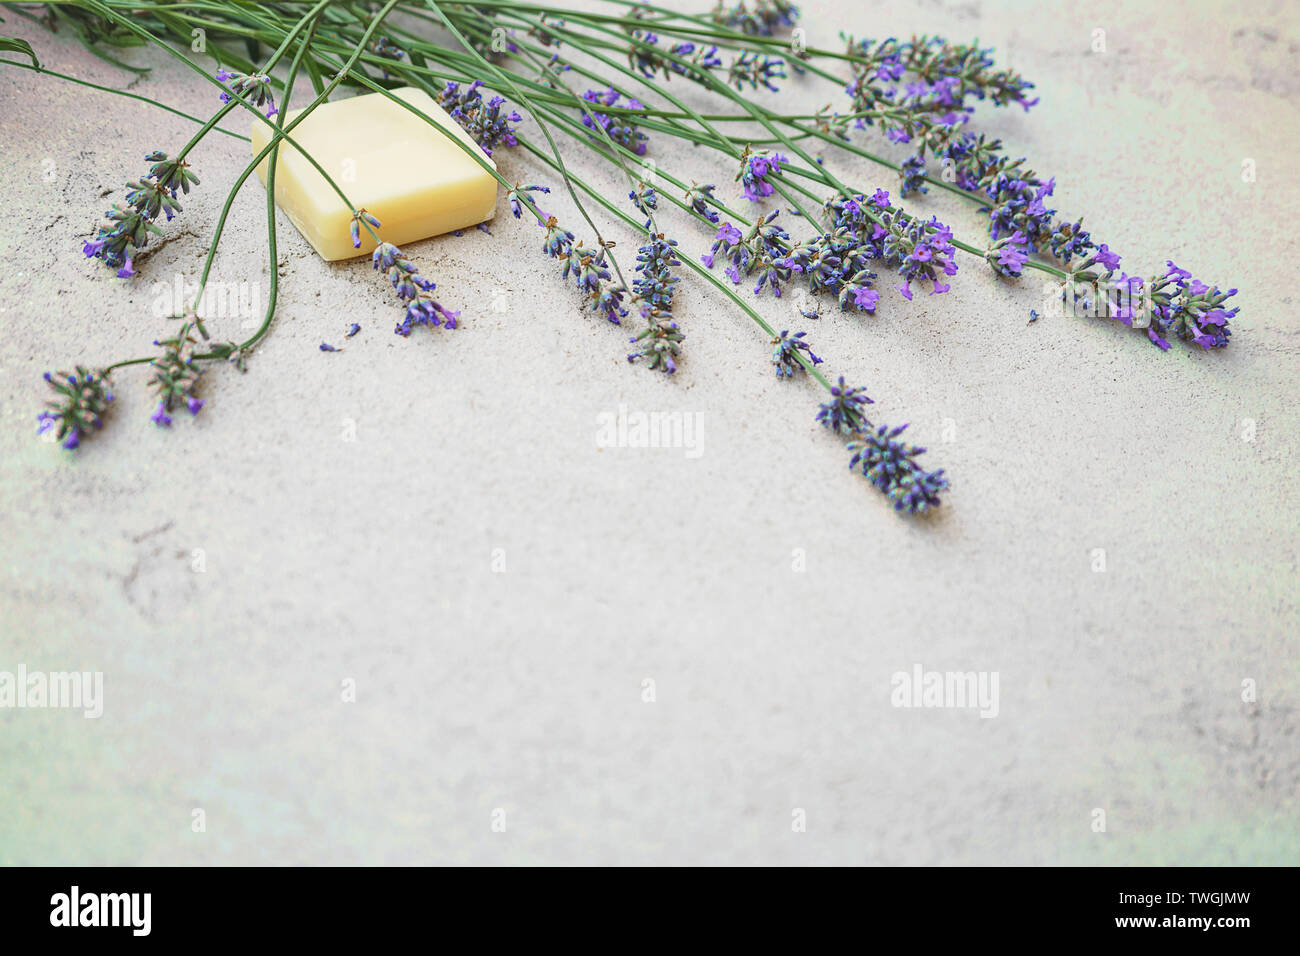 Lavender flowers and natural soap for bodycare on concrete background. - Stock Image